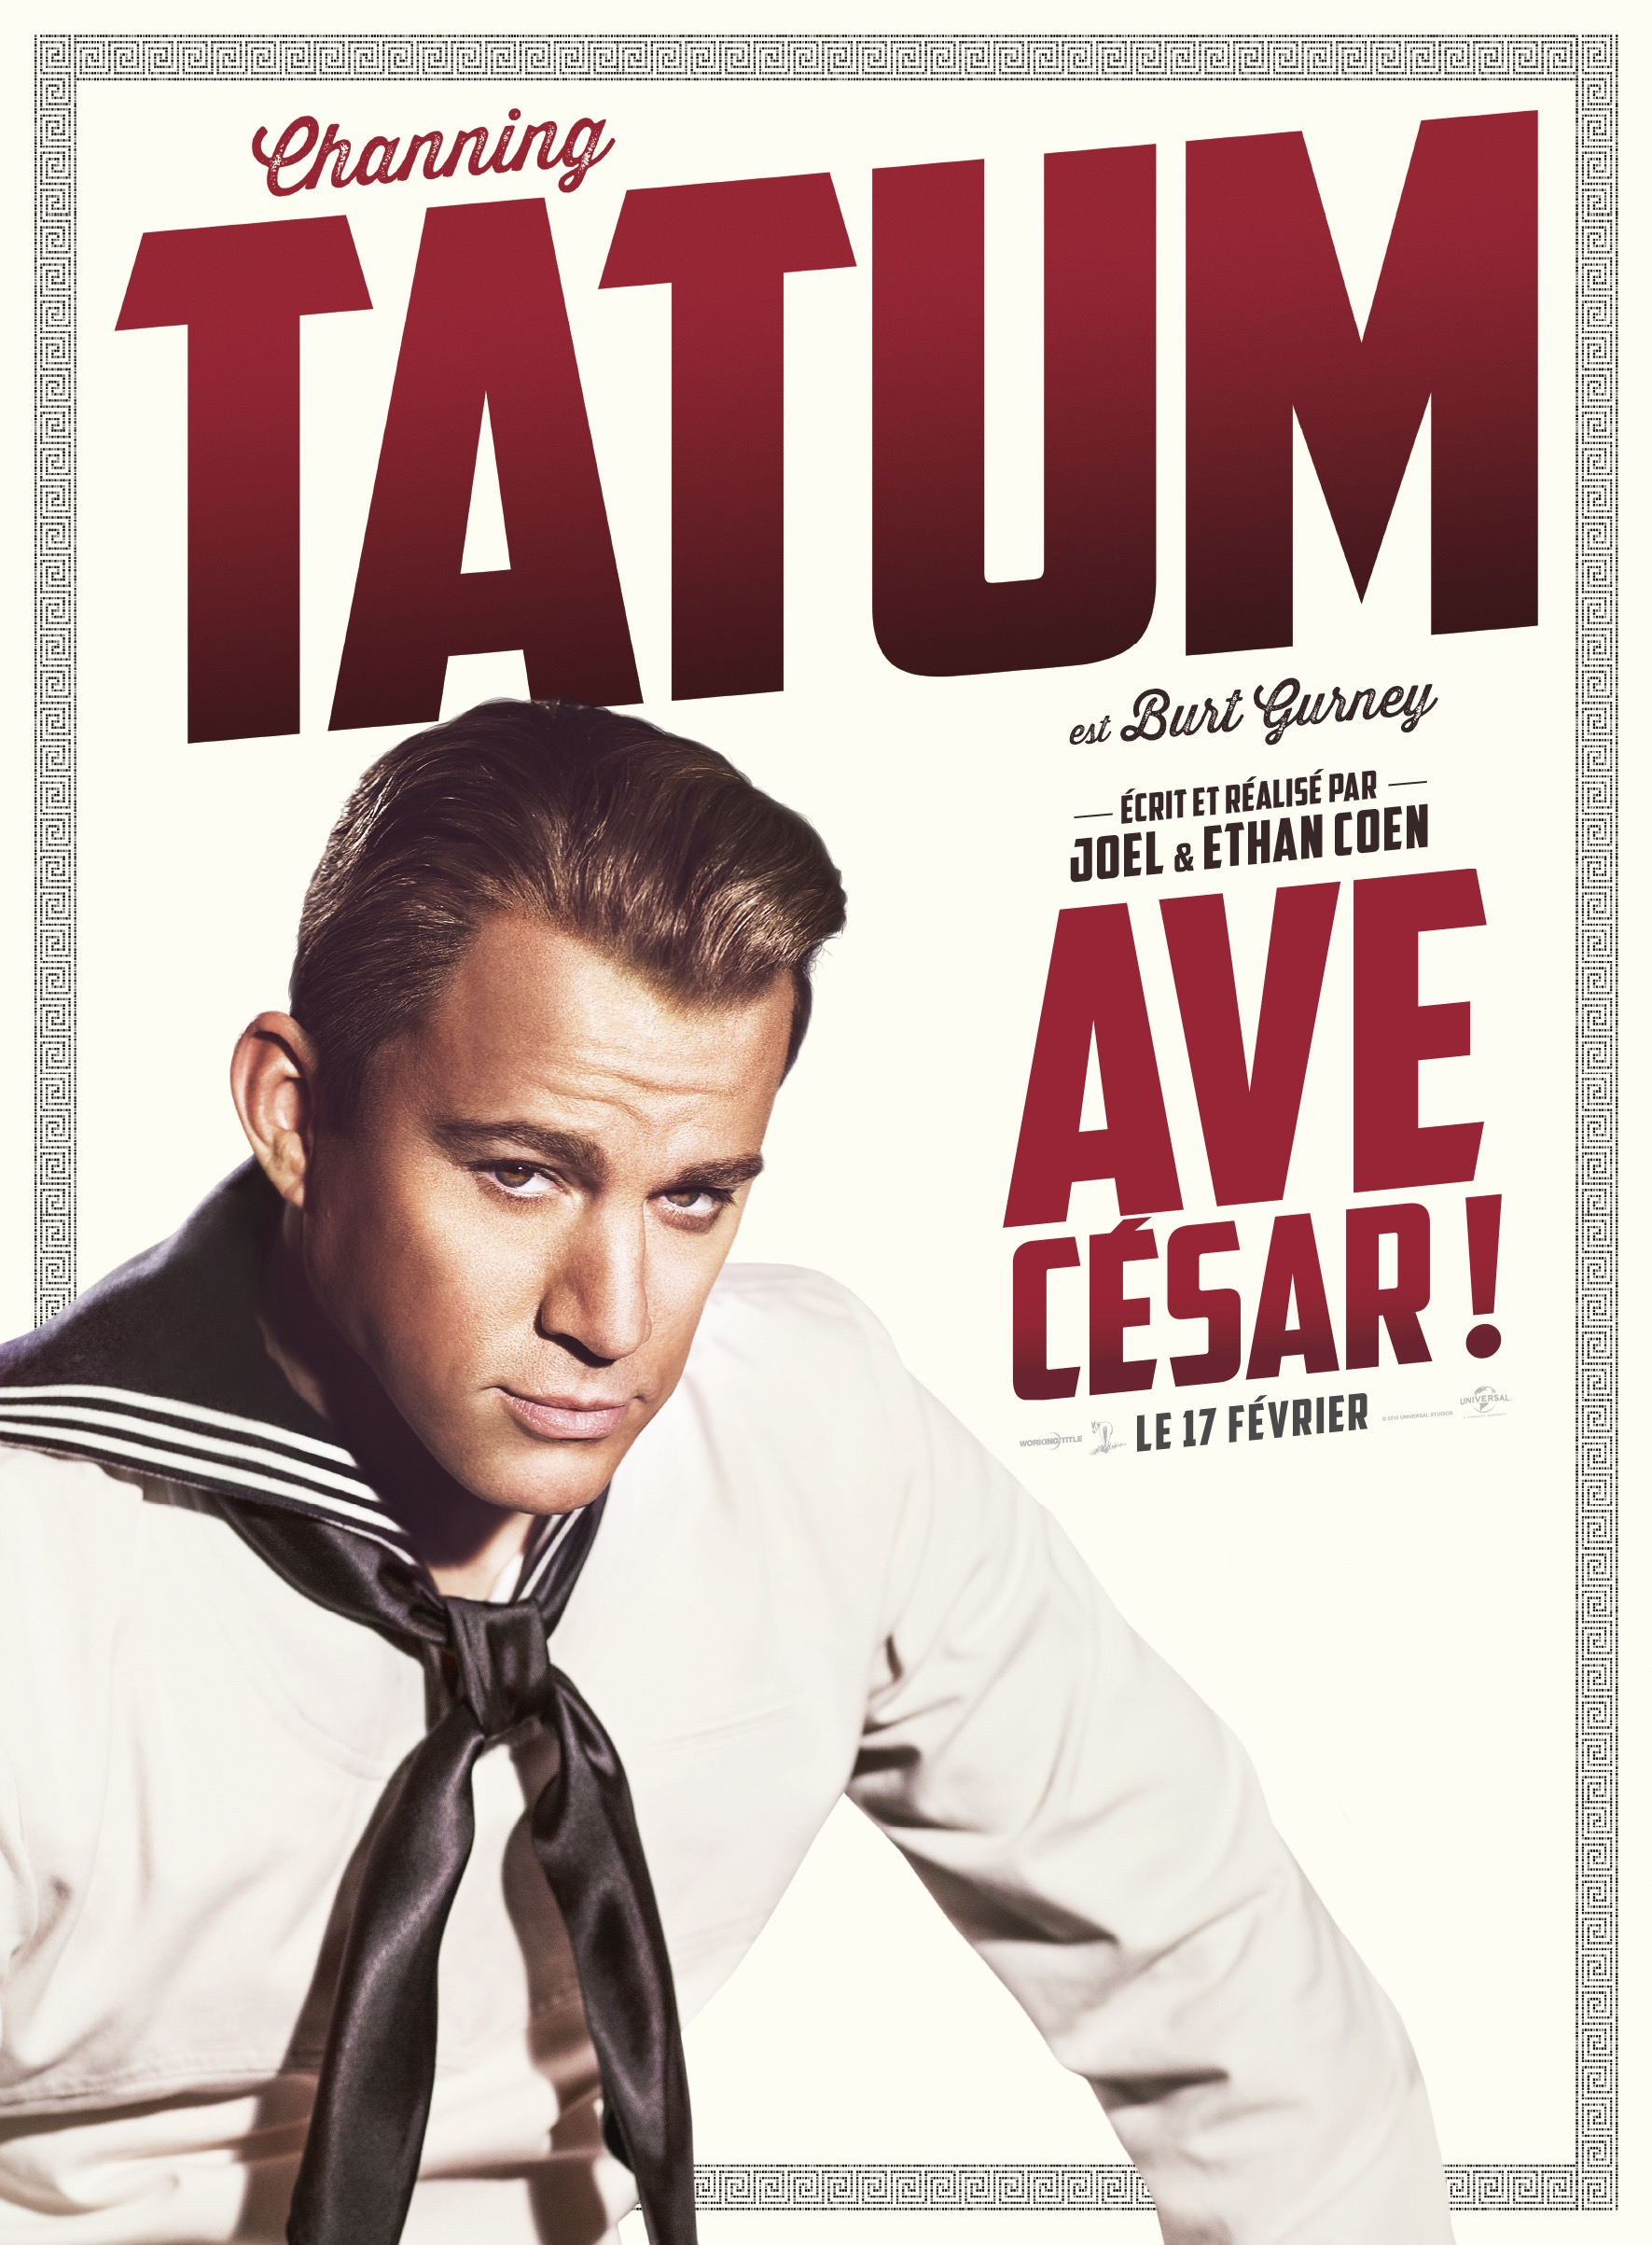 Ave Cesar affiches perso7